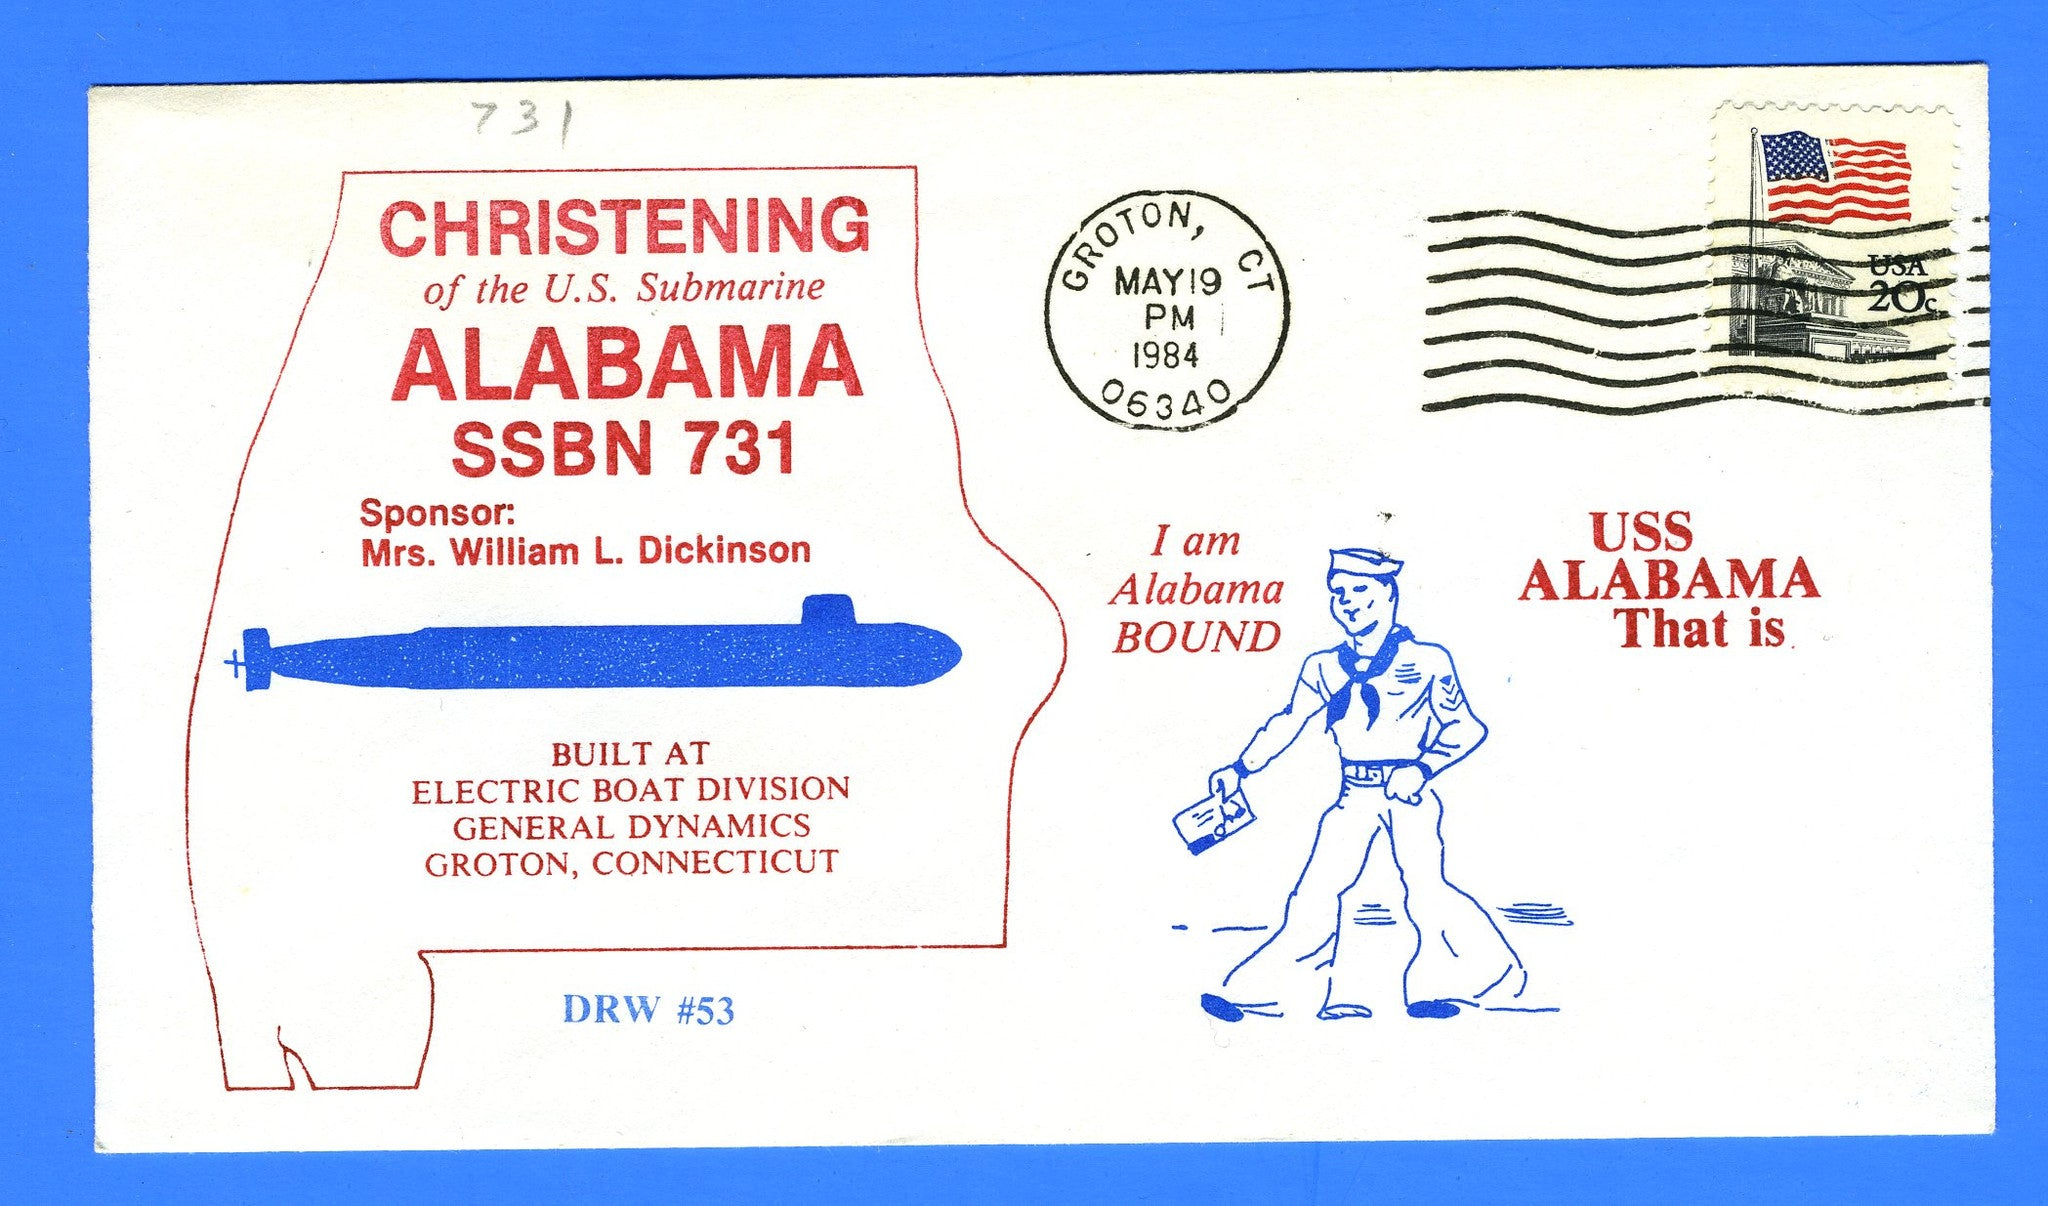 USS Alabama SSBN-731 Christening May 19, 1984 - DRW 53